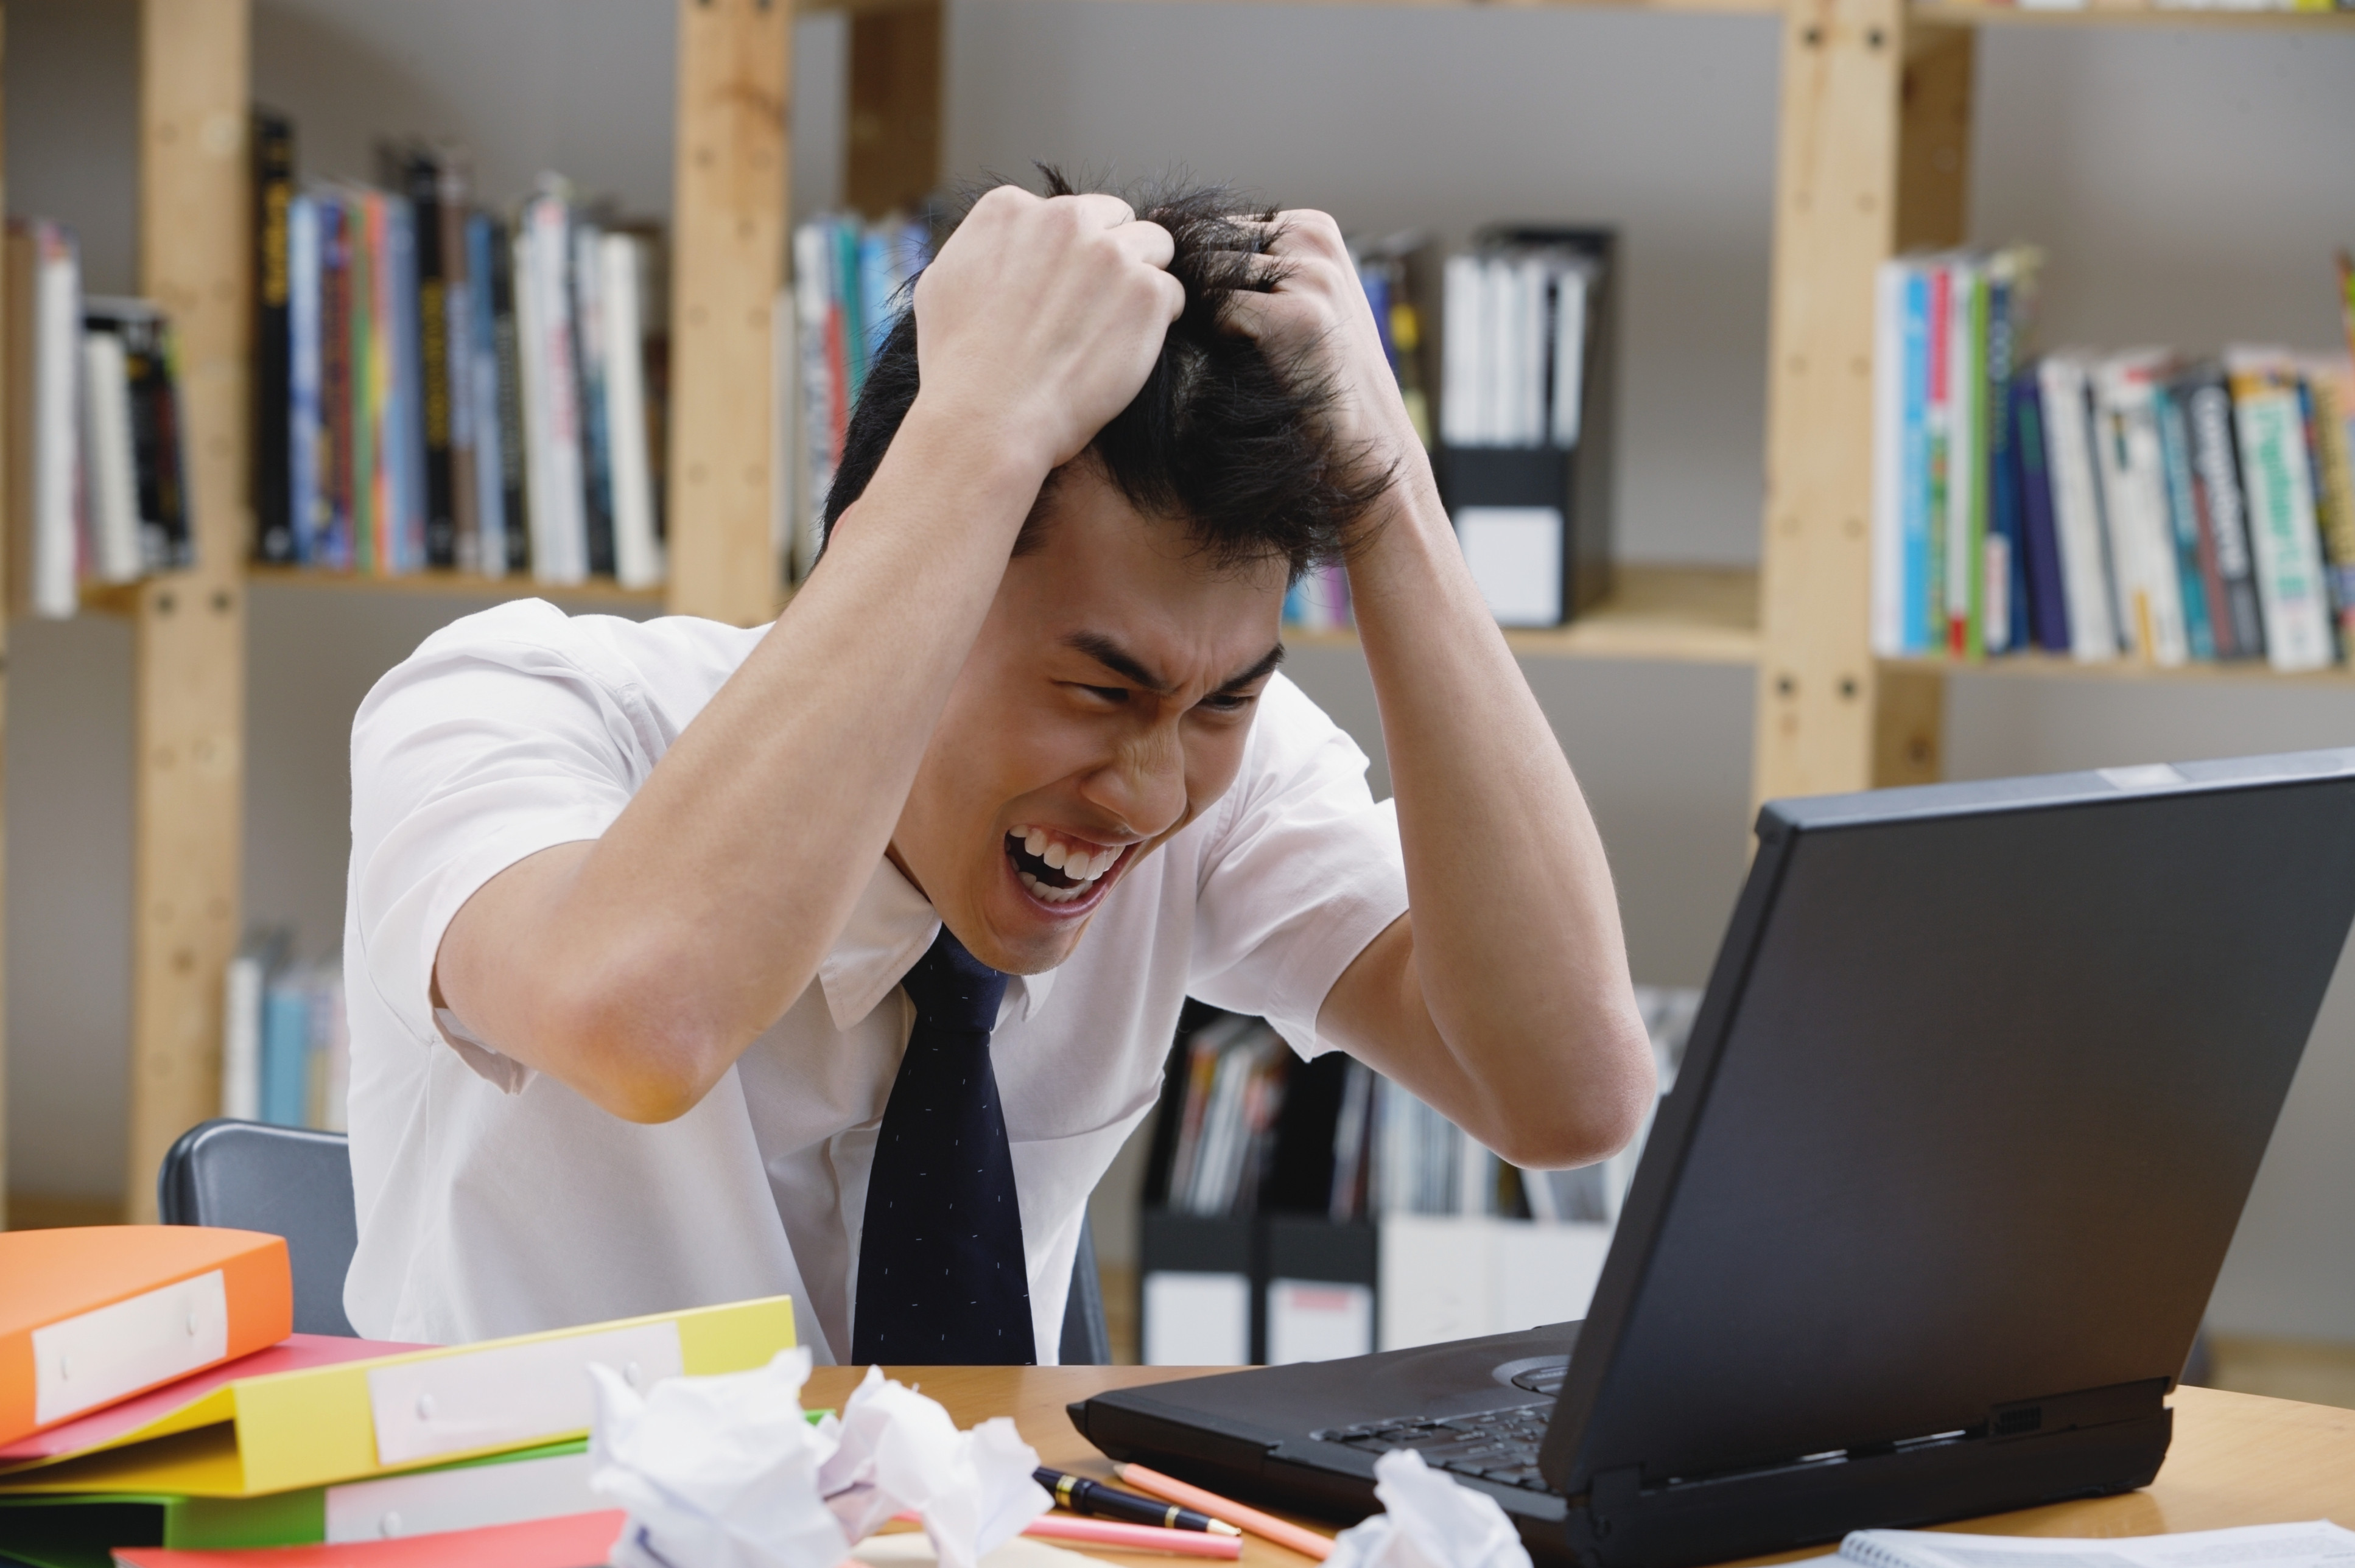 Young man in library, pulling his hair, looking at laptop